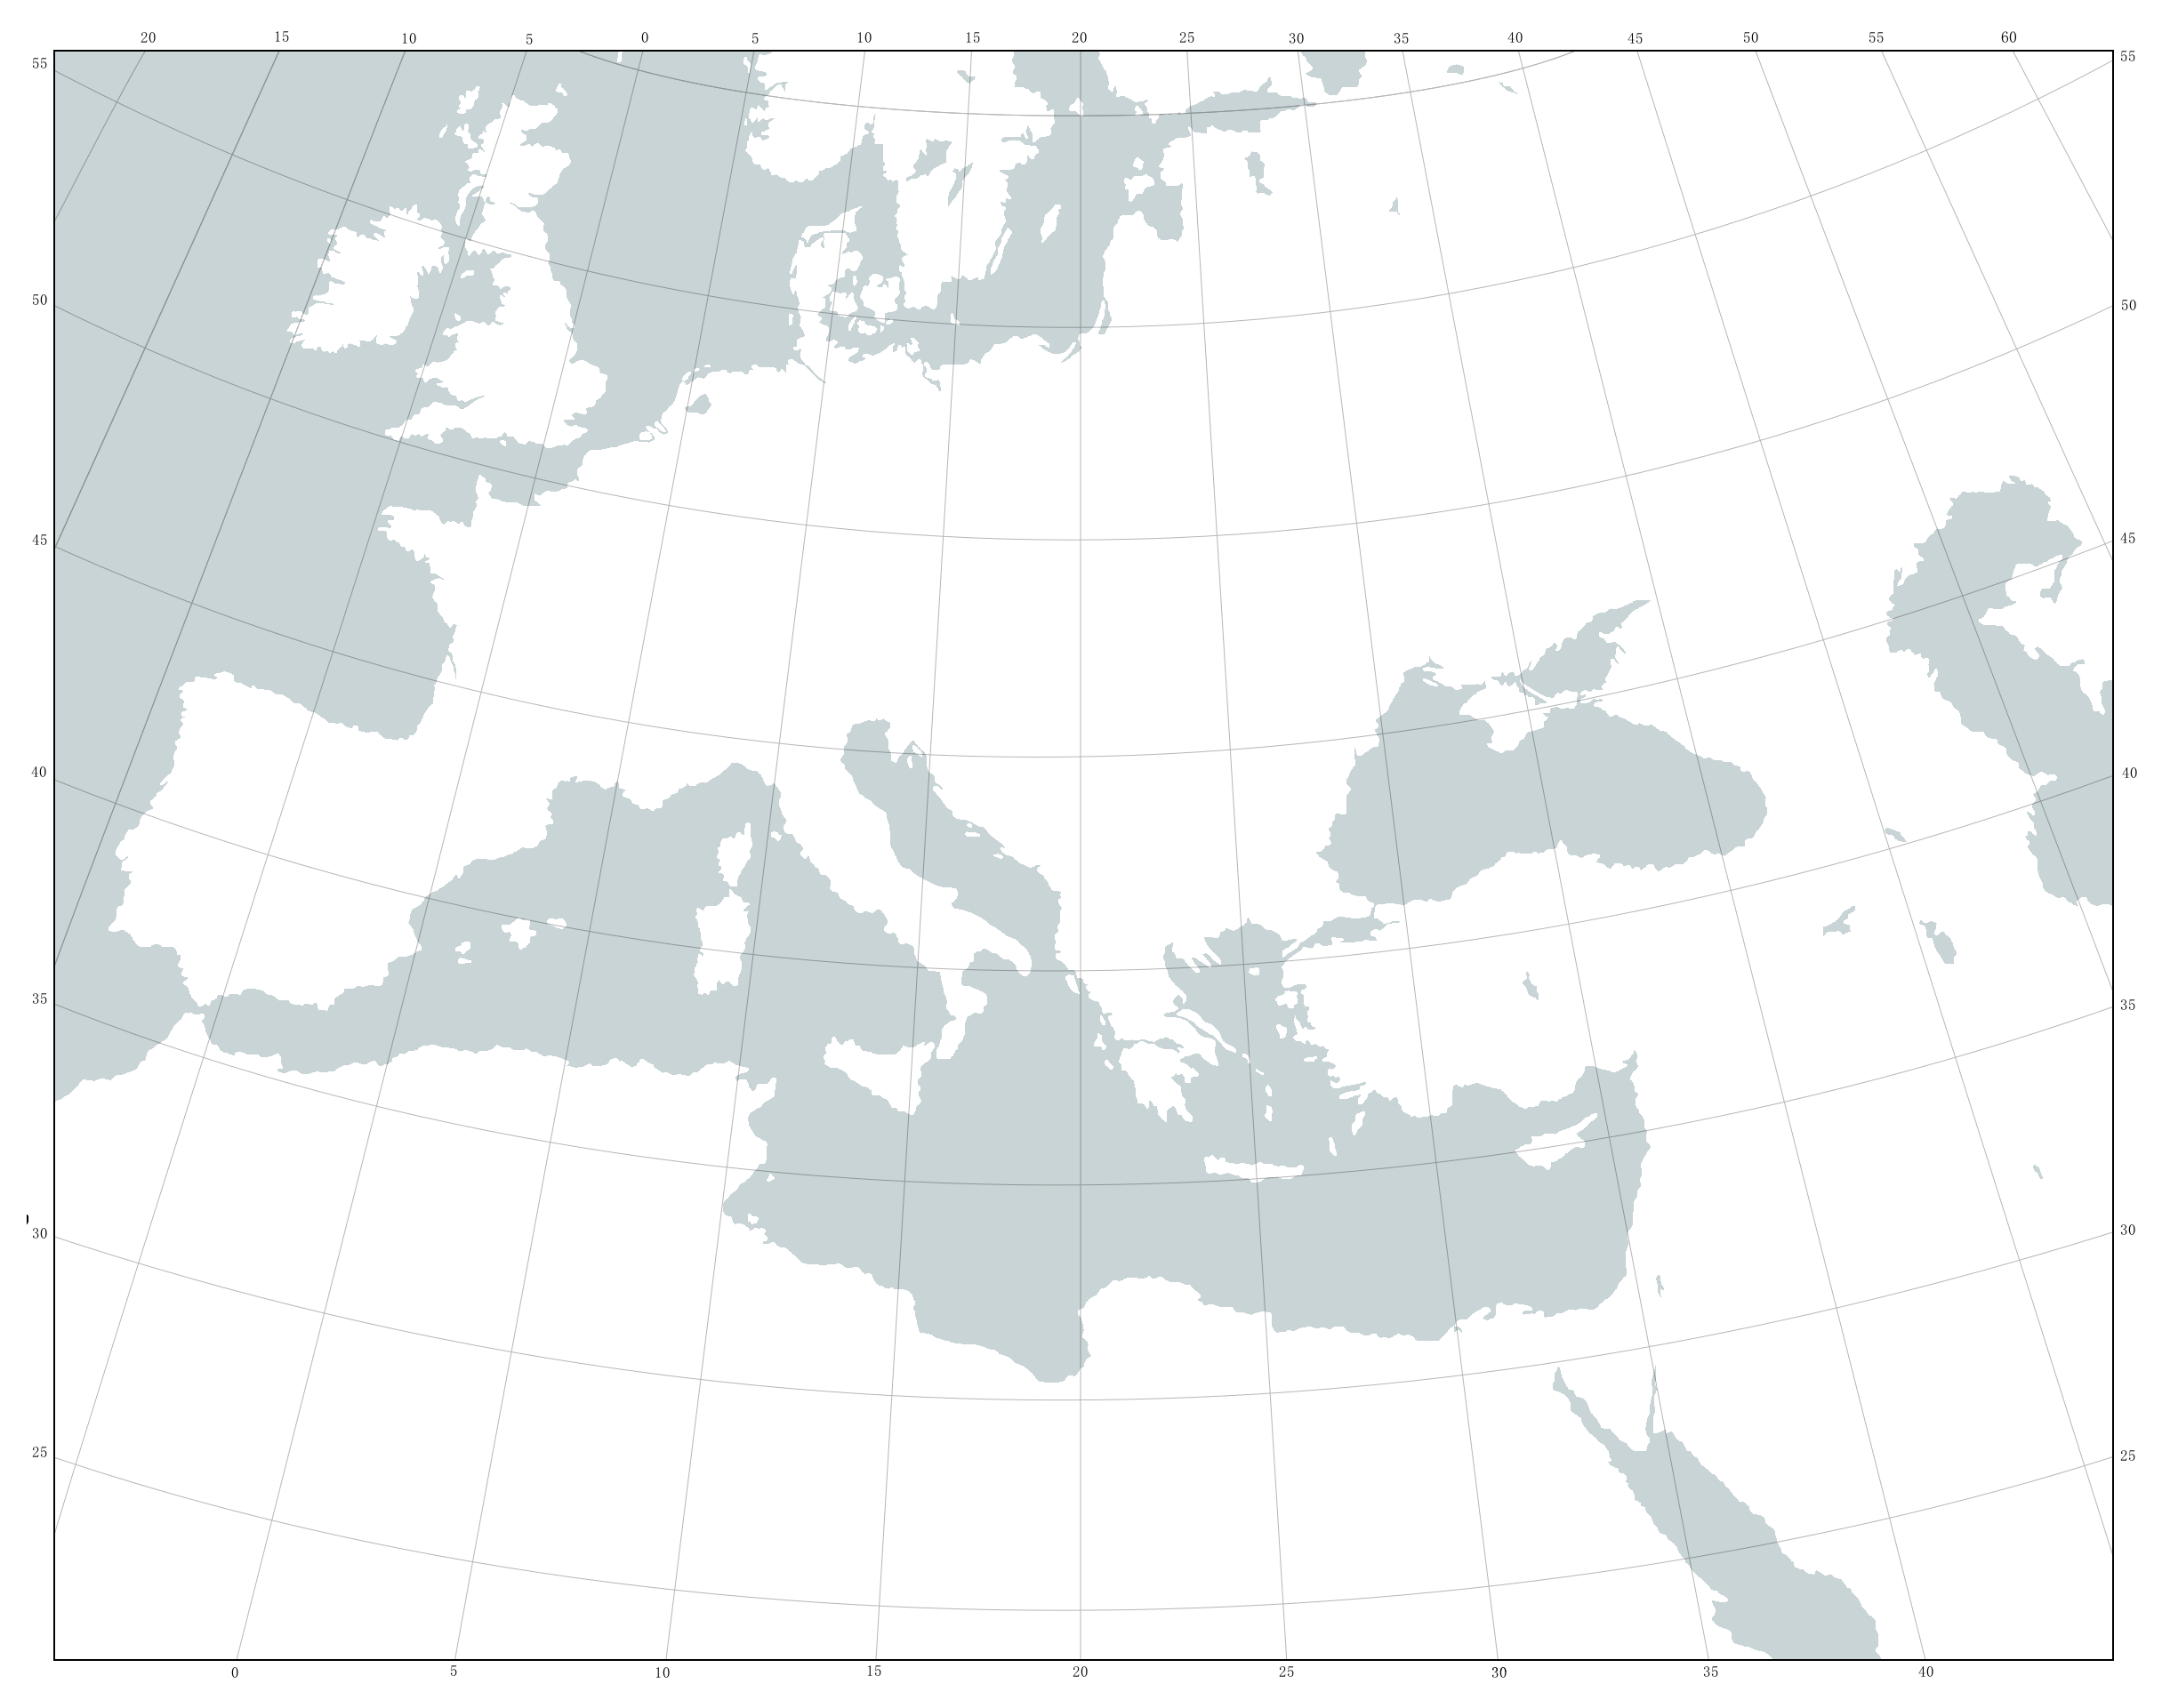 blank map of europe and north africa clean by kuusinen on deviantart